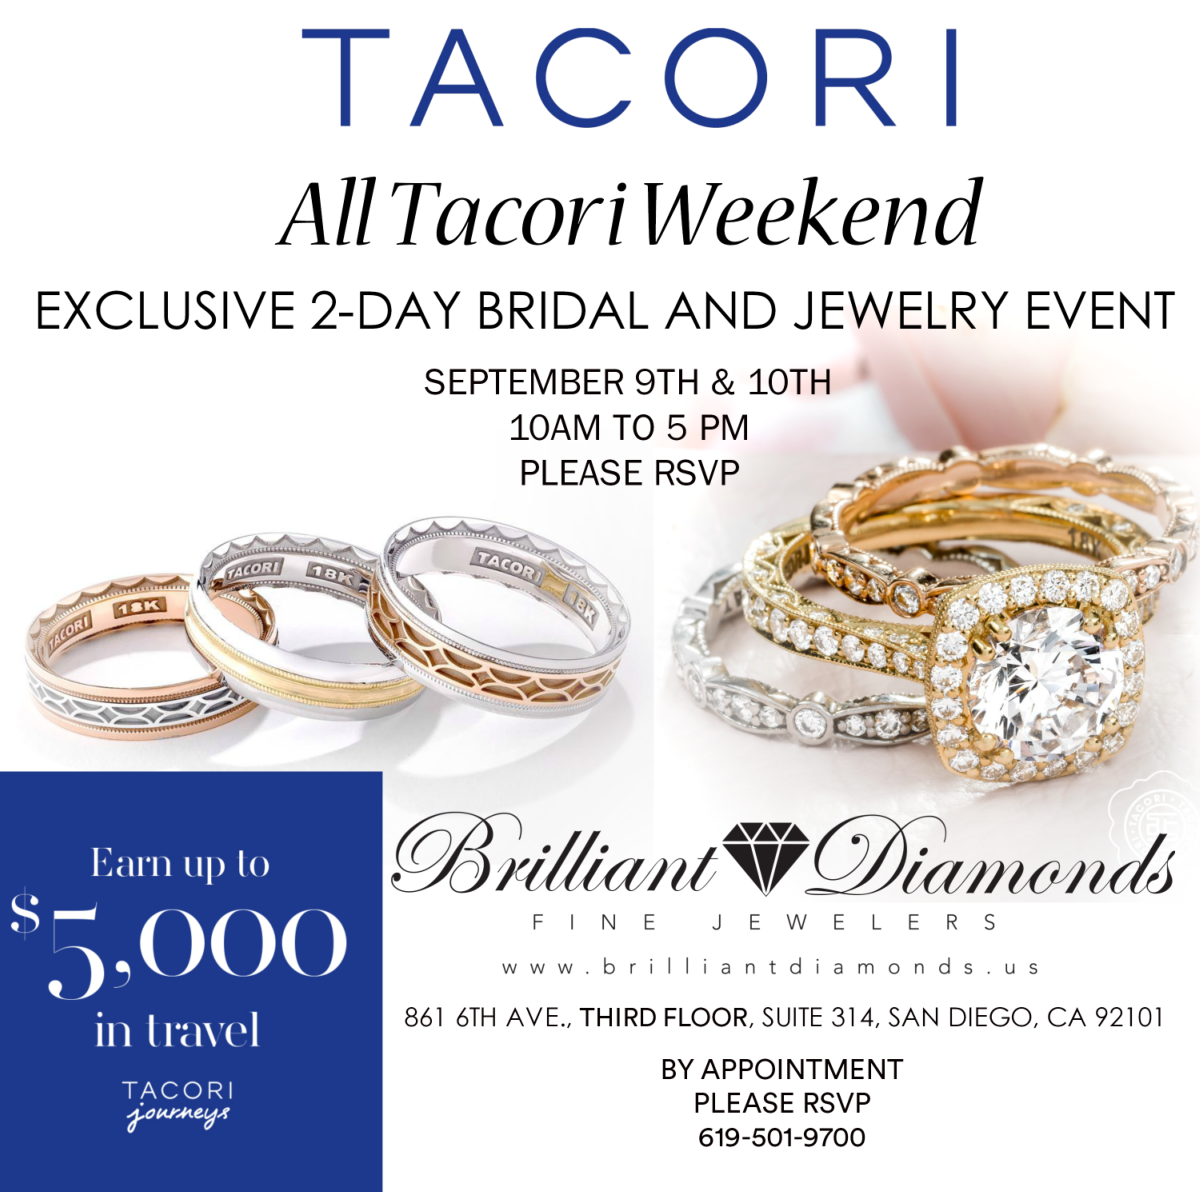 All Tacori Weekend Exclusive 2-Day Event at Brilliant Diamonds Fine Jewelers in San Diego